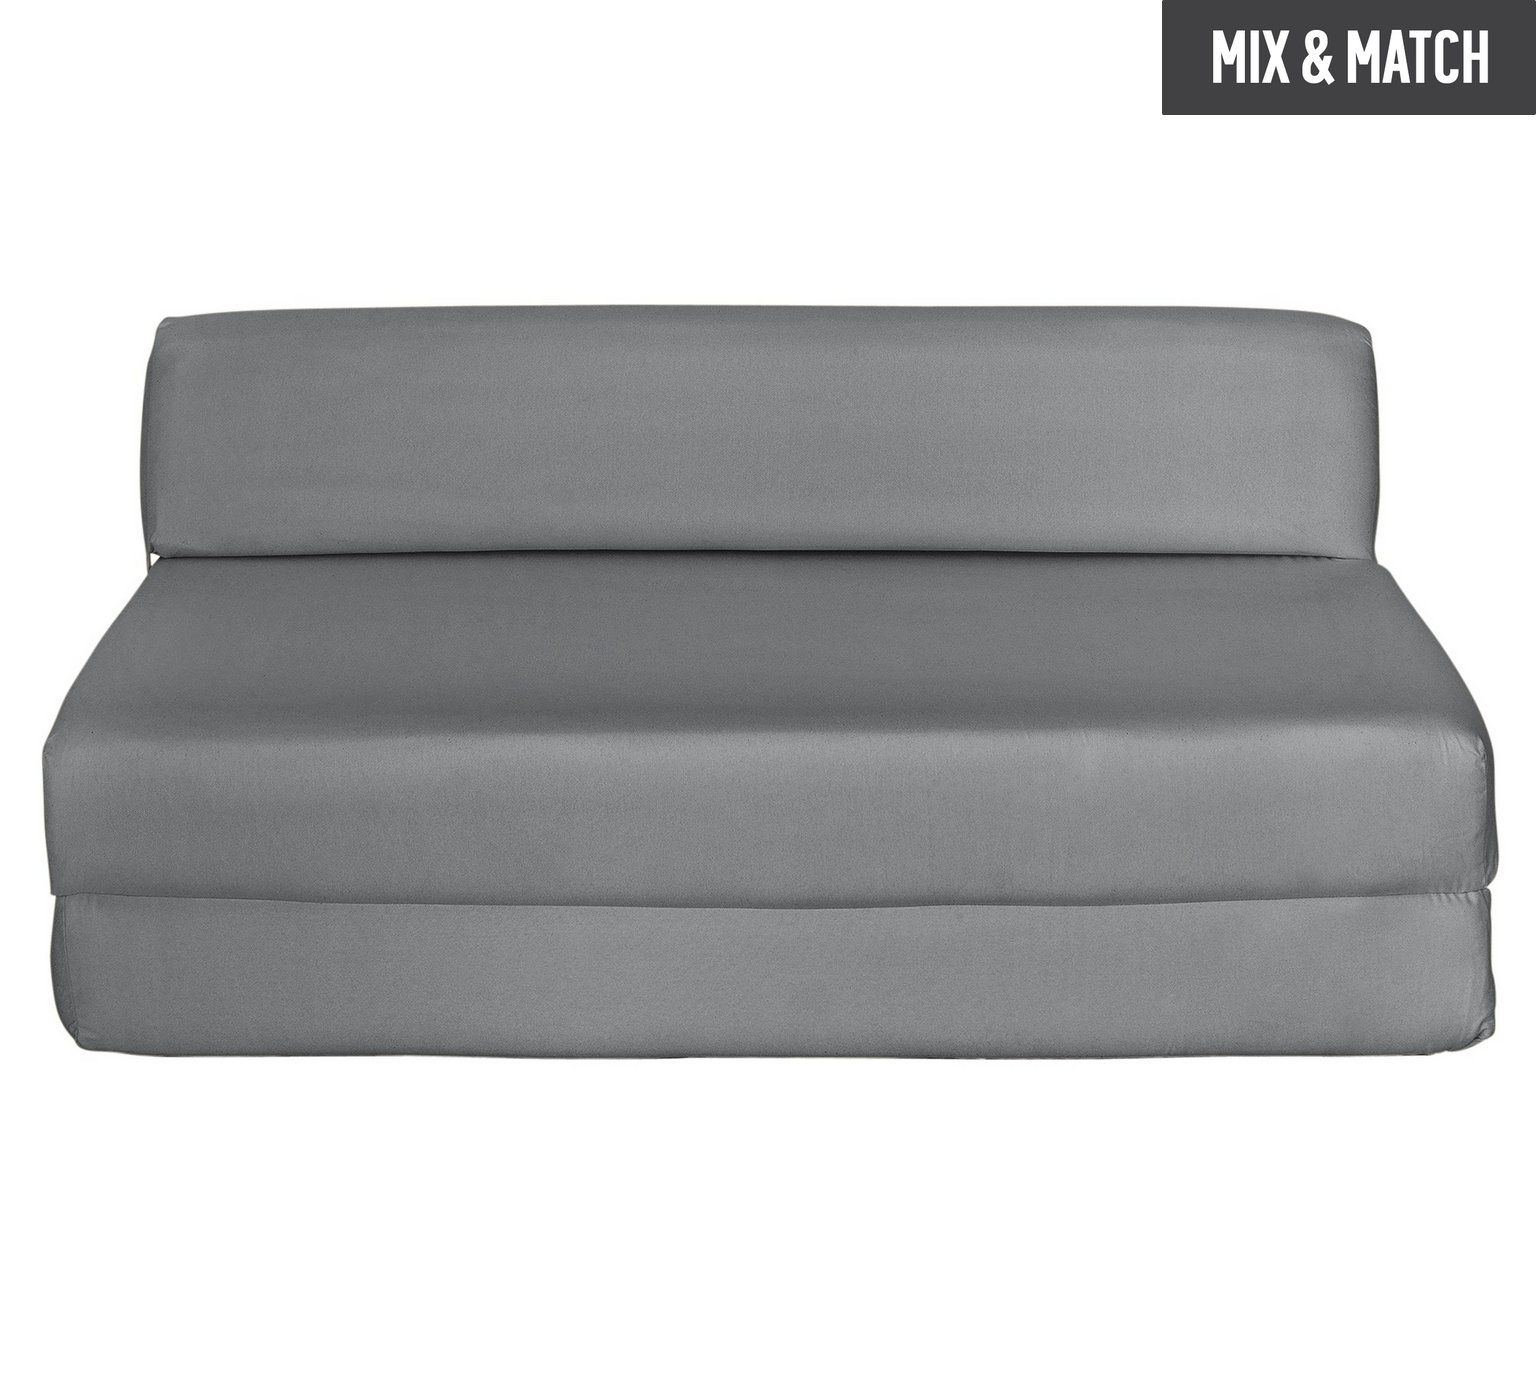 Buy Colourmatch Small Double Fabric Chairbed Flint Grey At Argos Co Uk Visit Argos Co Uk To Shop Online For Sofa Beds Chairbeds And Fu Grey Sofa Bed Comfort Mattress Chair Fabric